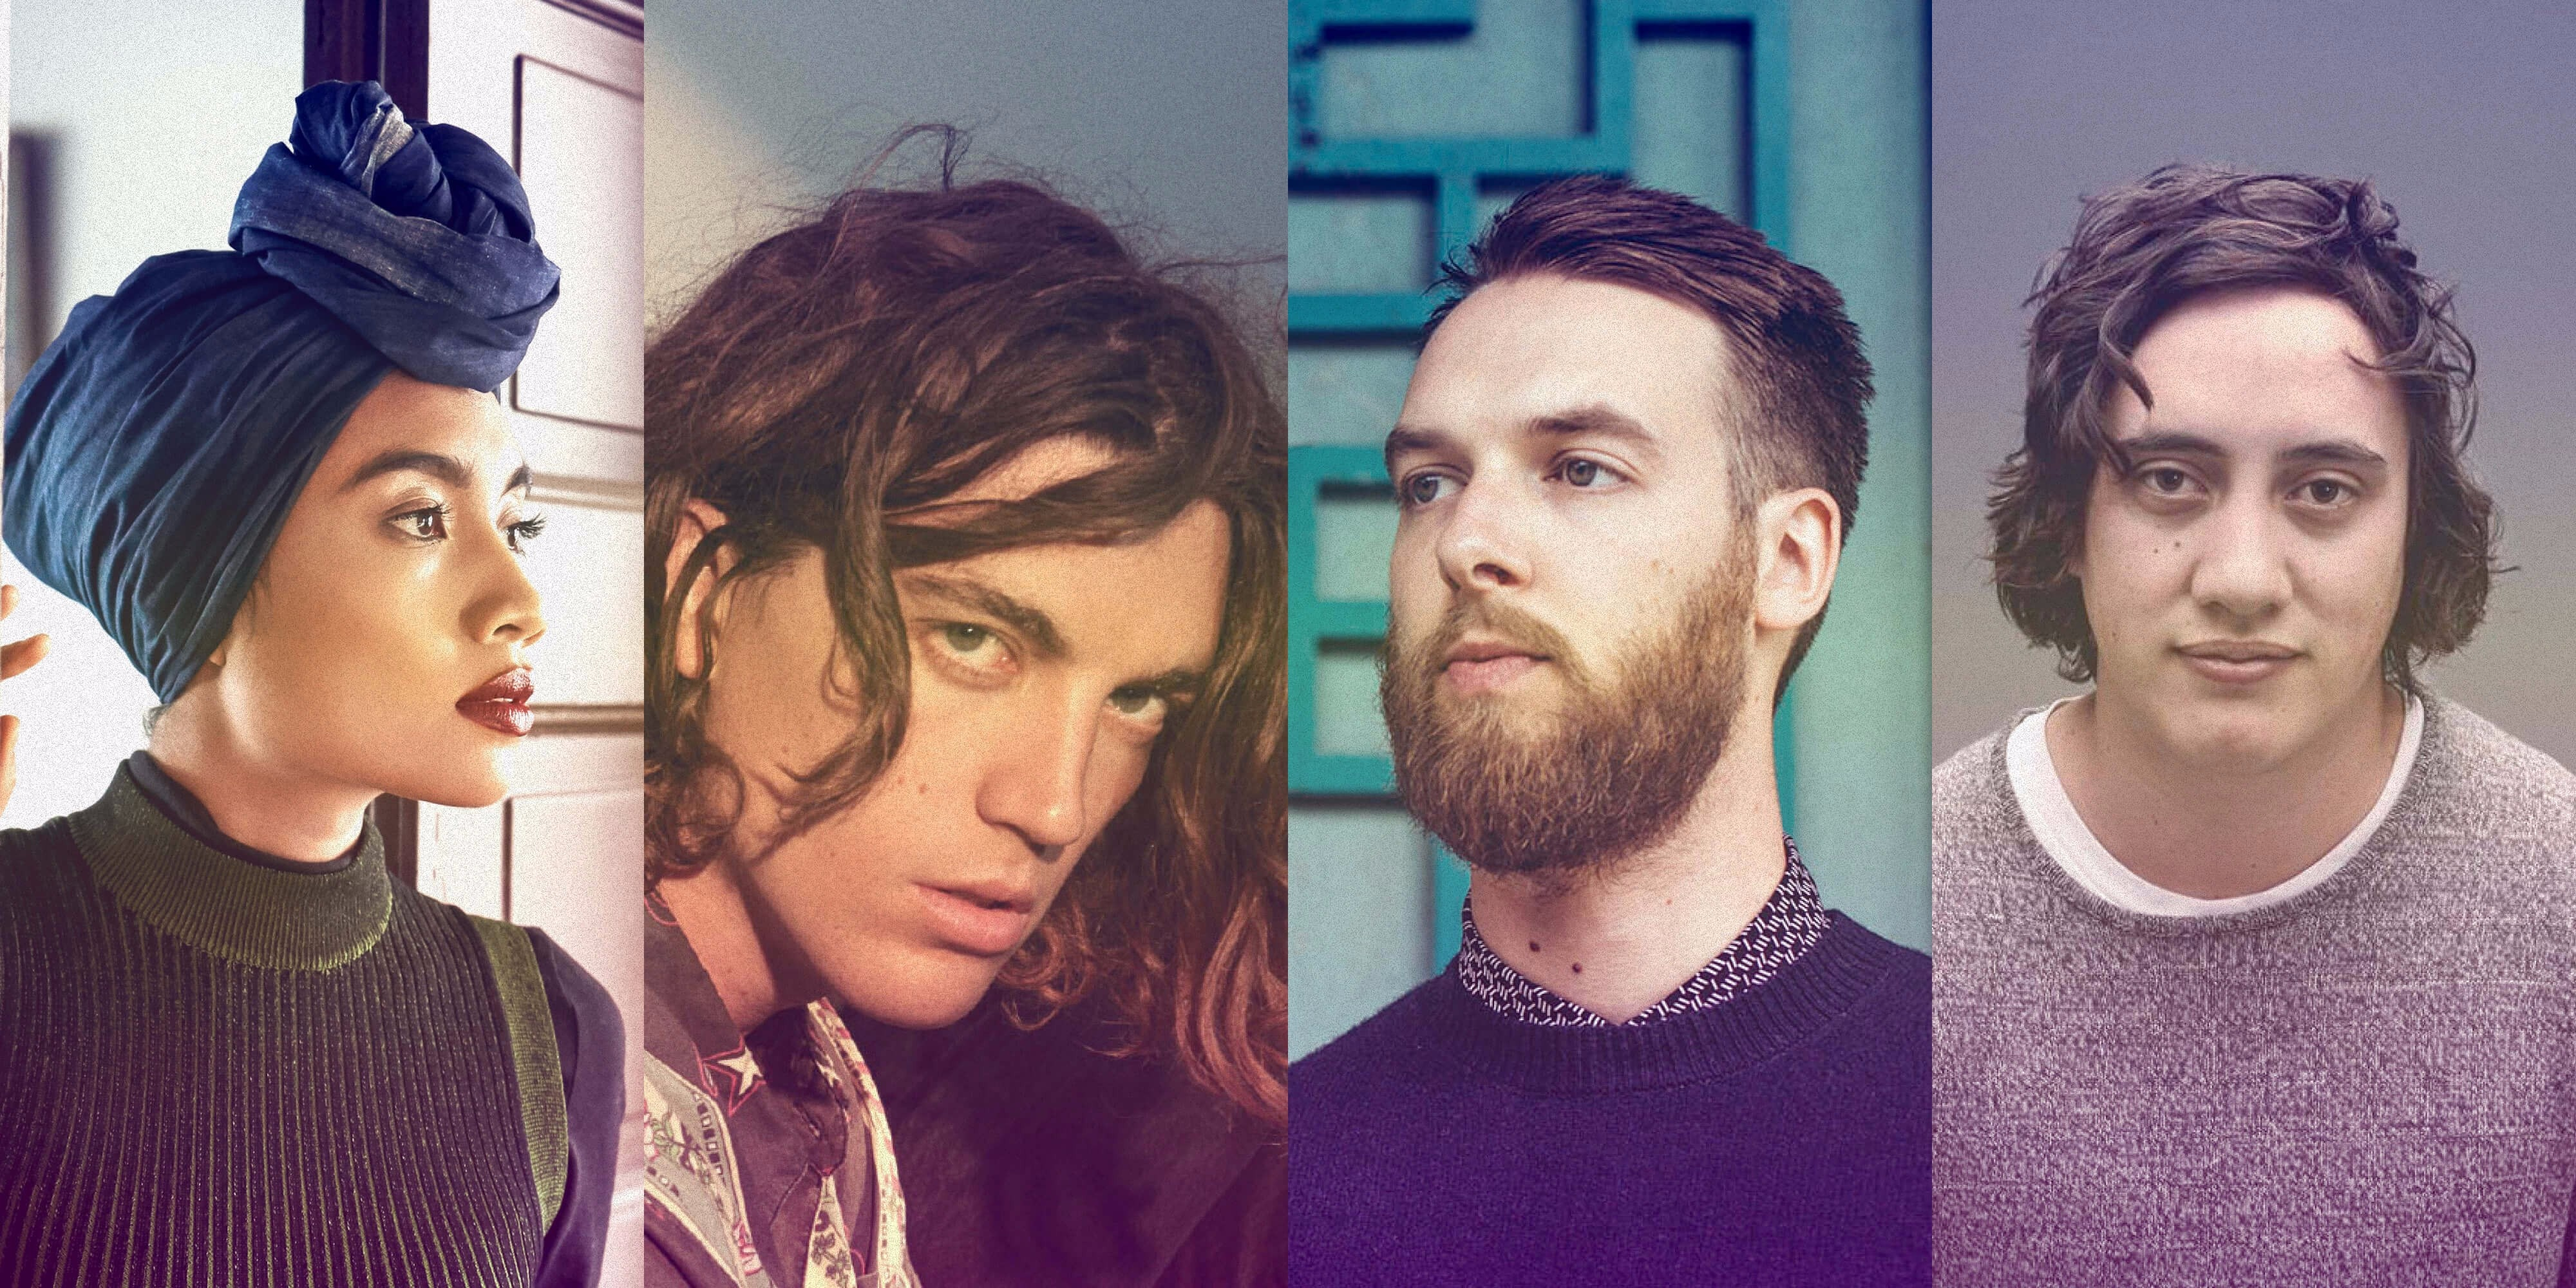 HONNE, Woodlock, LANY and YUNA talk about their local music scenes, festivals, and social media